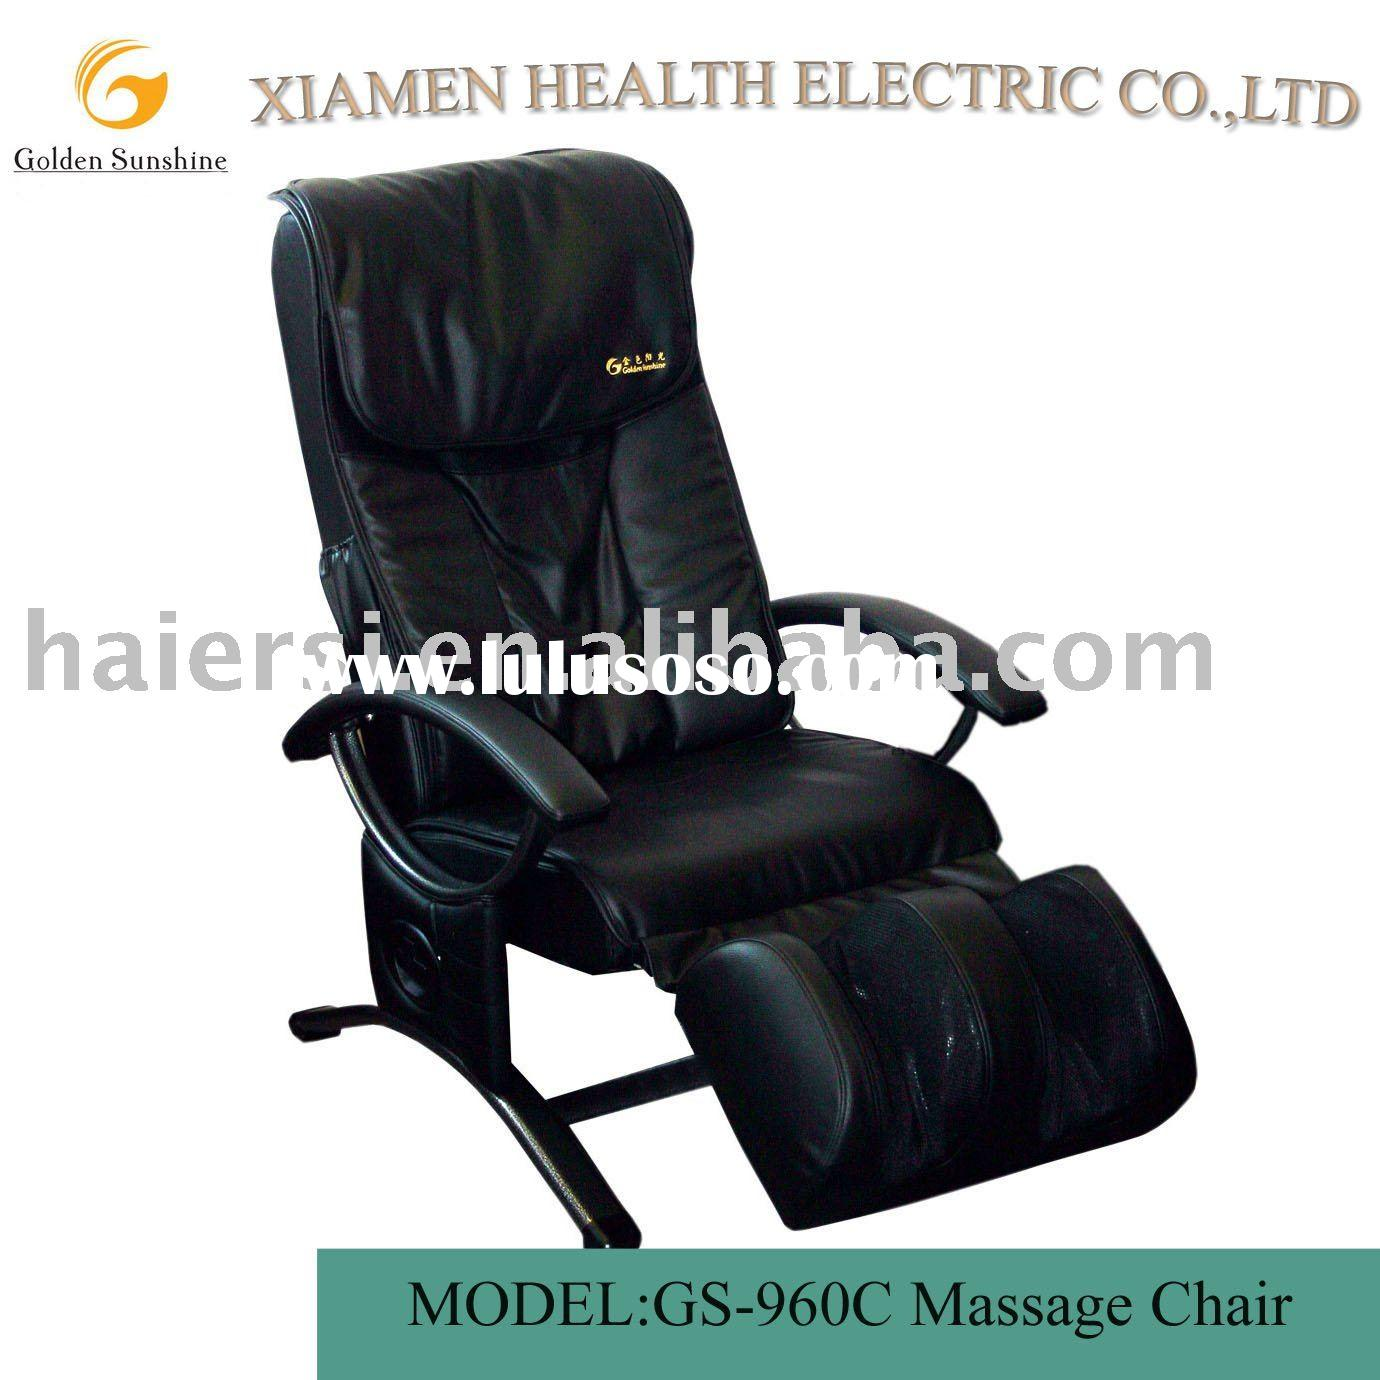 Home used Health Care Electric Massager Chair